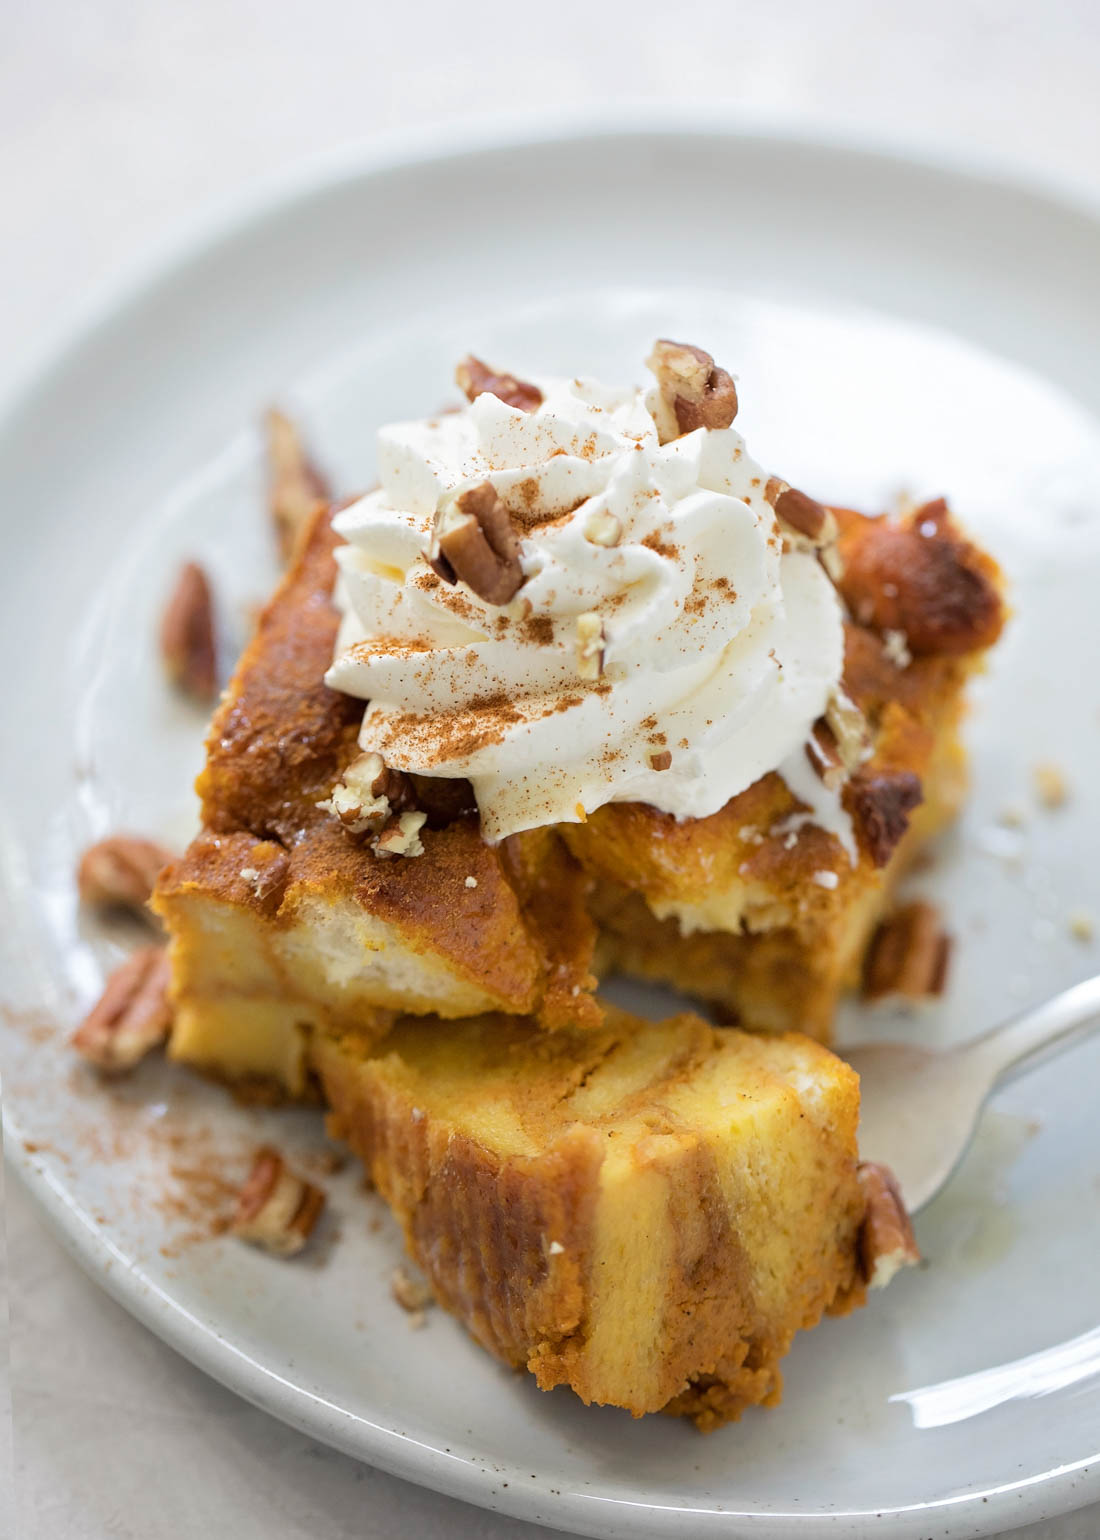 Bread pudding with pumpkin - on white plate